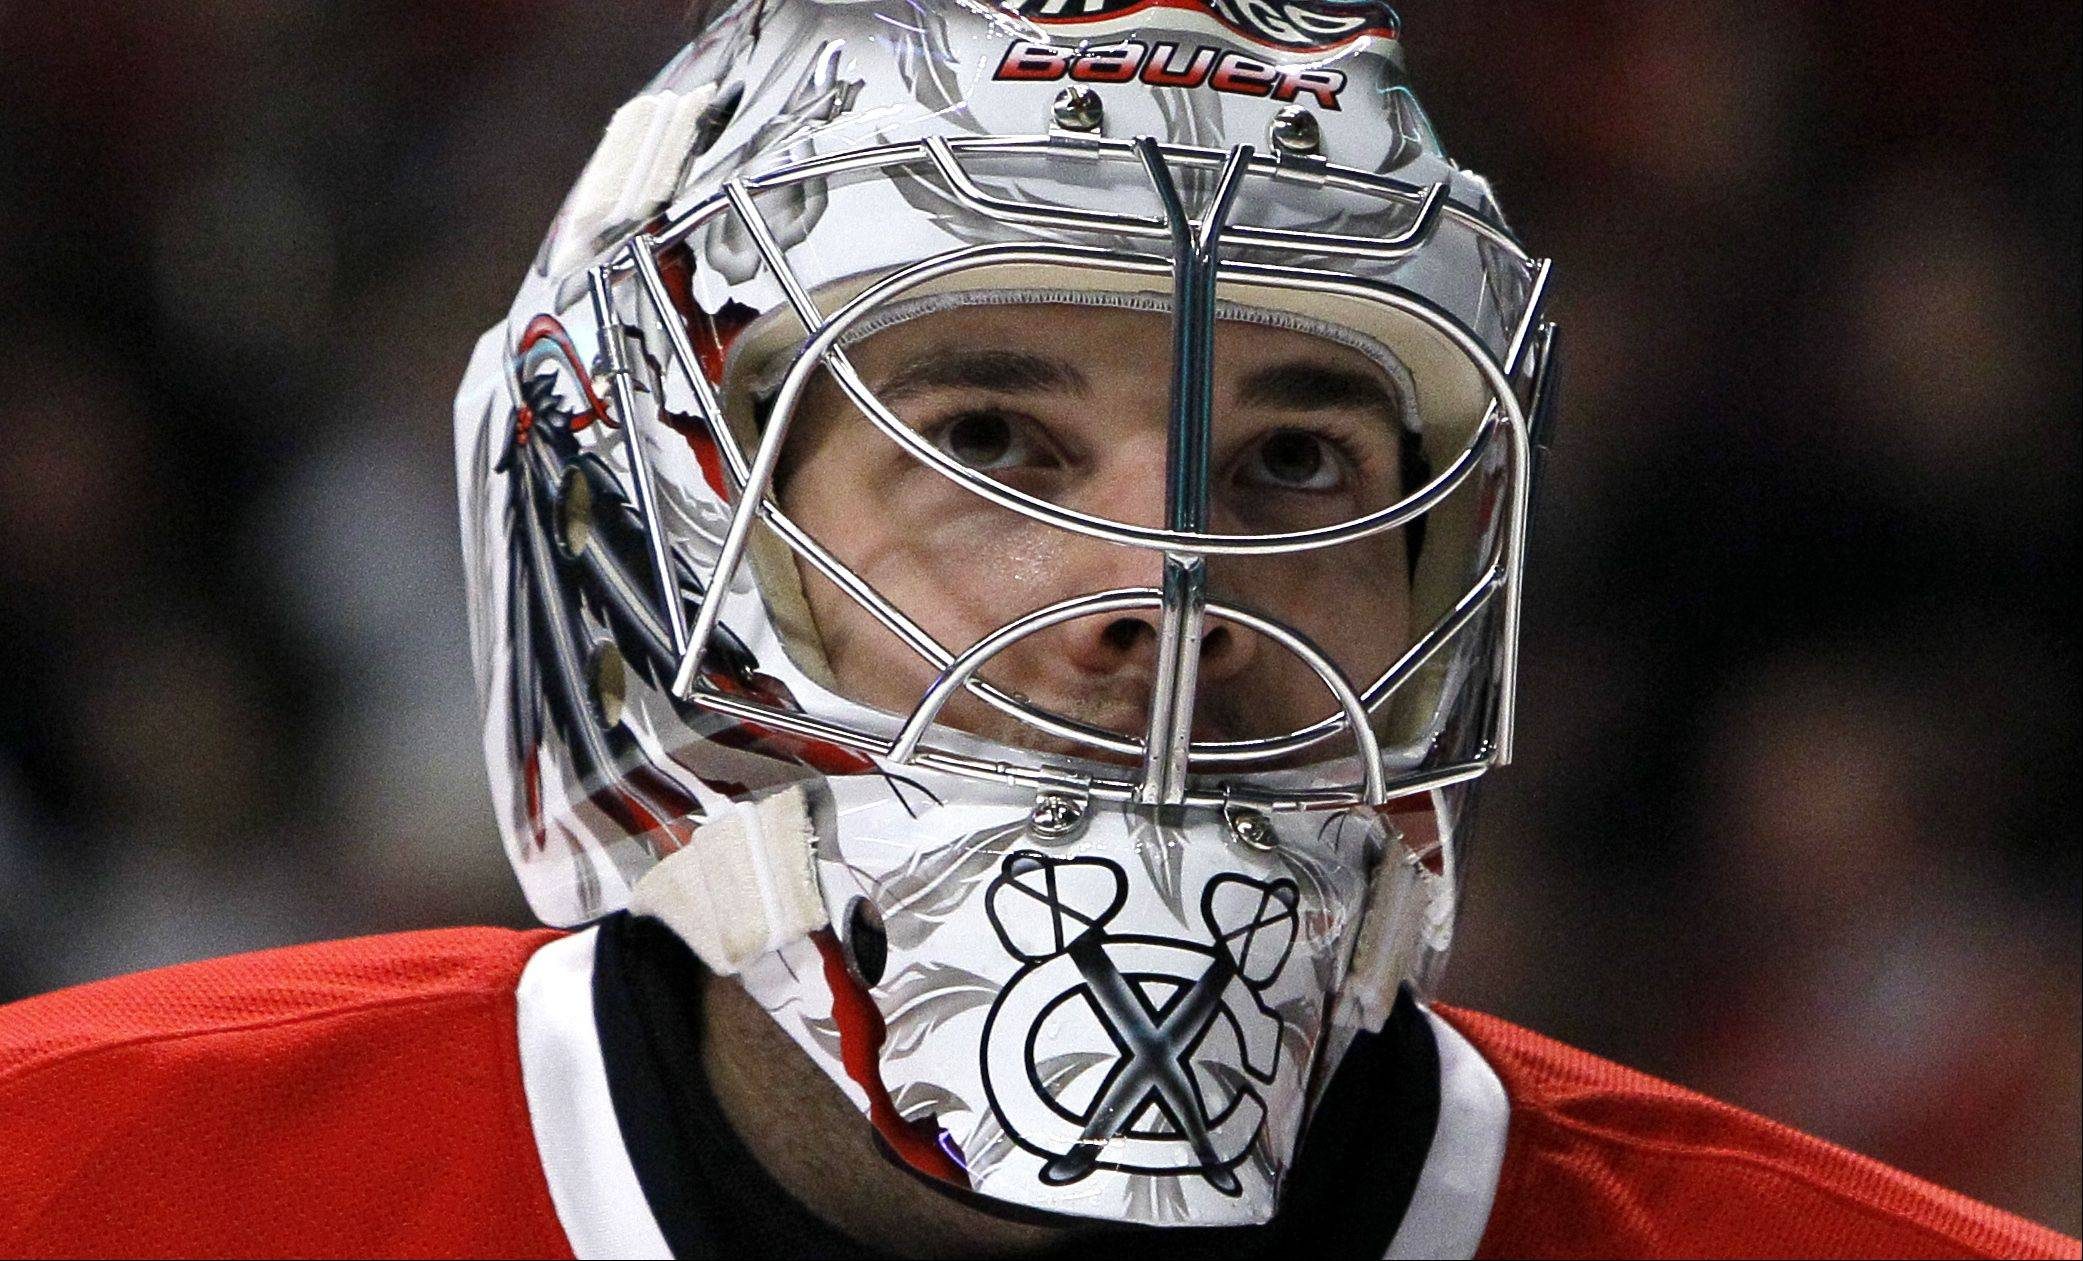 After an outstanding rookie season, Blackhawks goalie Corey Crawford has signed a three-year contract with the team worth a total of $8 million.